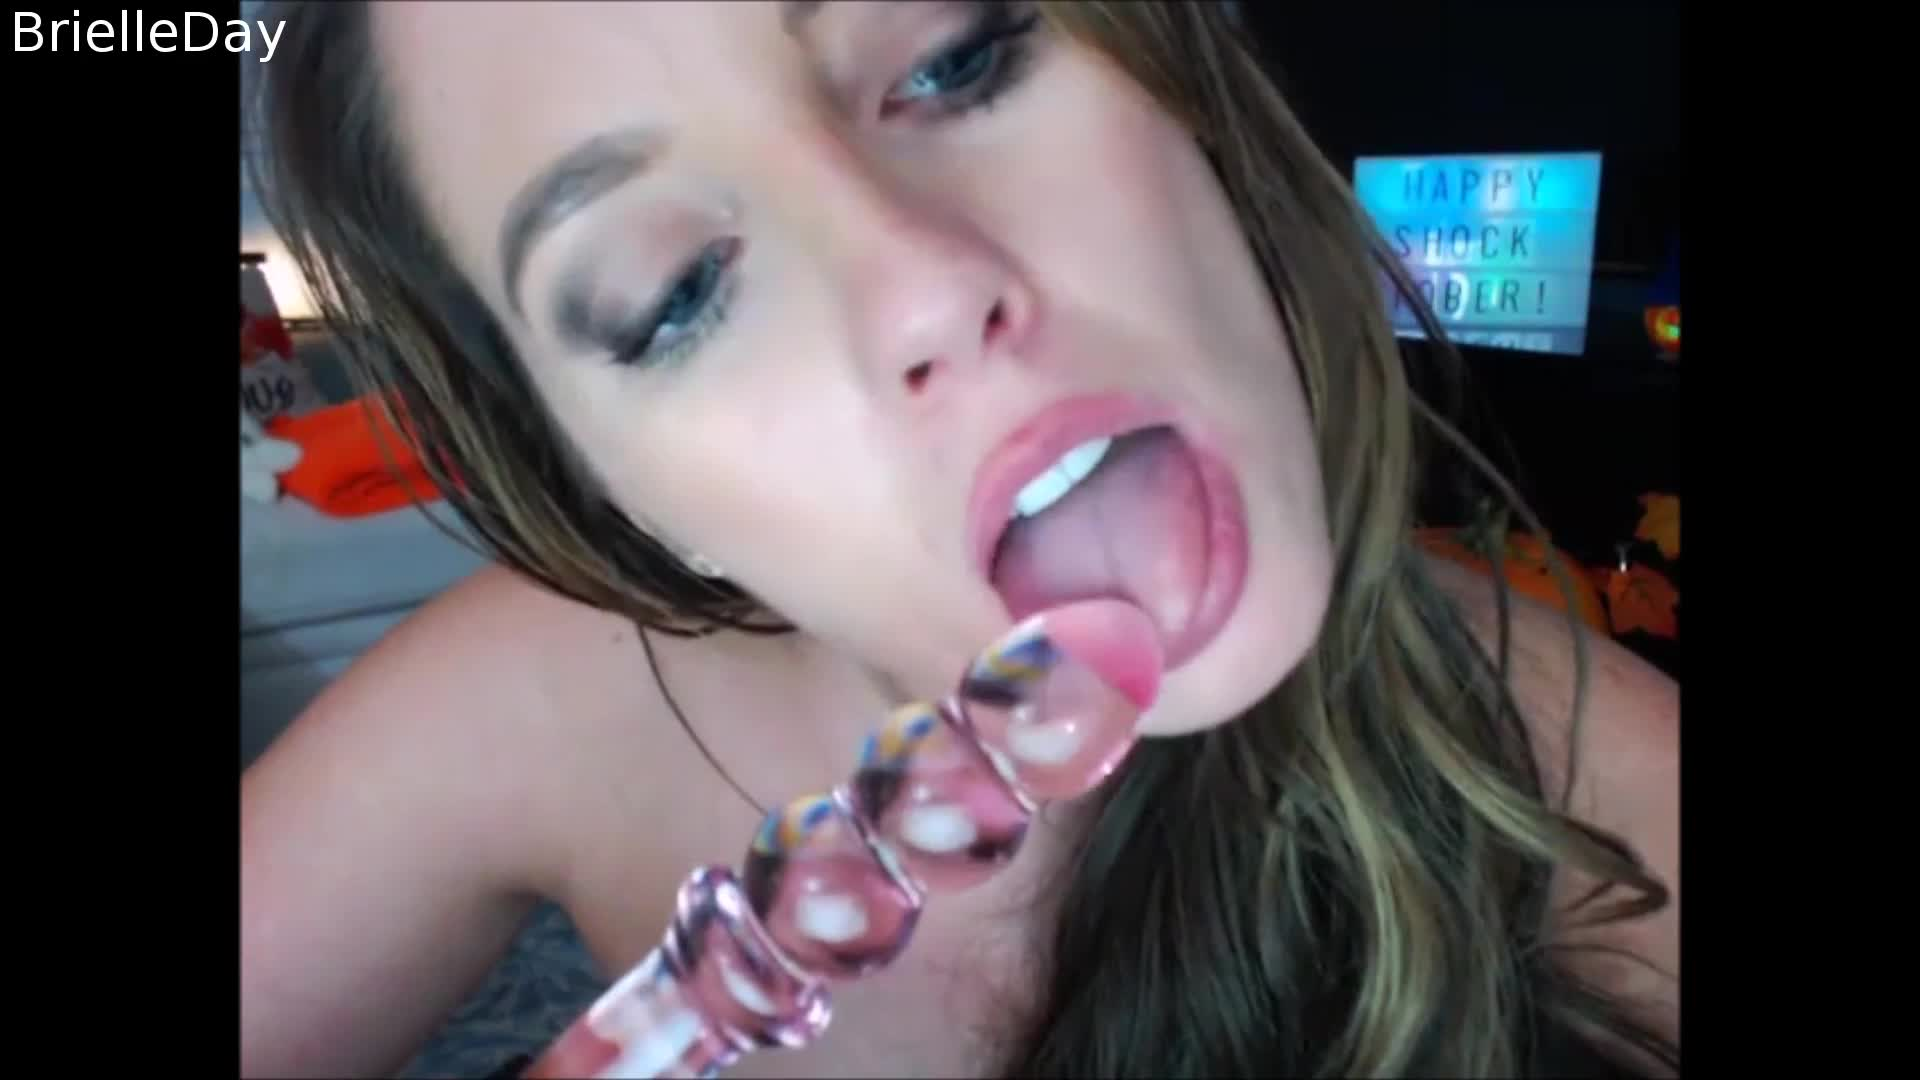 """""""BrielleDay"""" (Dildo Sucking, Extreme Close-ups, Live Cams, Spanking, Toys) Testing Multiple Toys - ManyVids Production"""